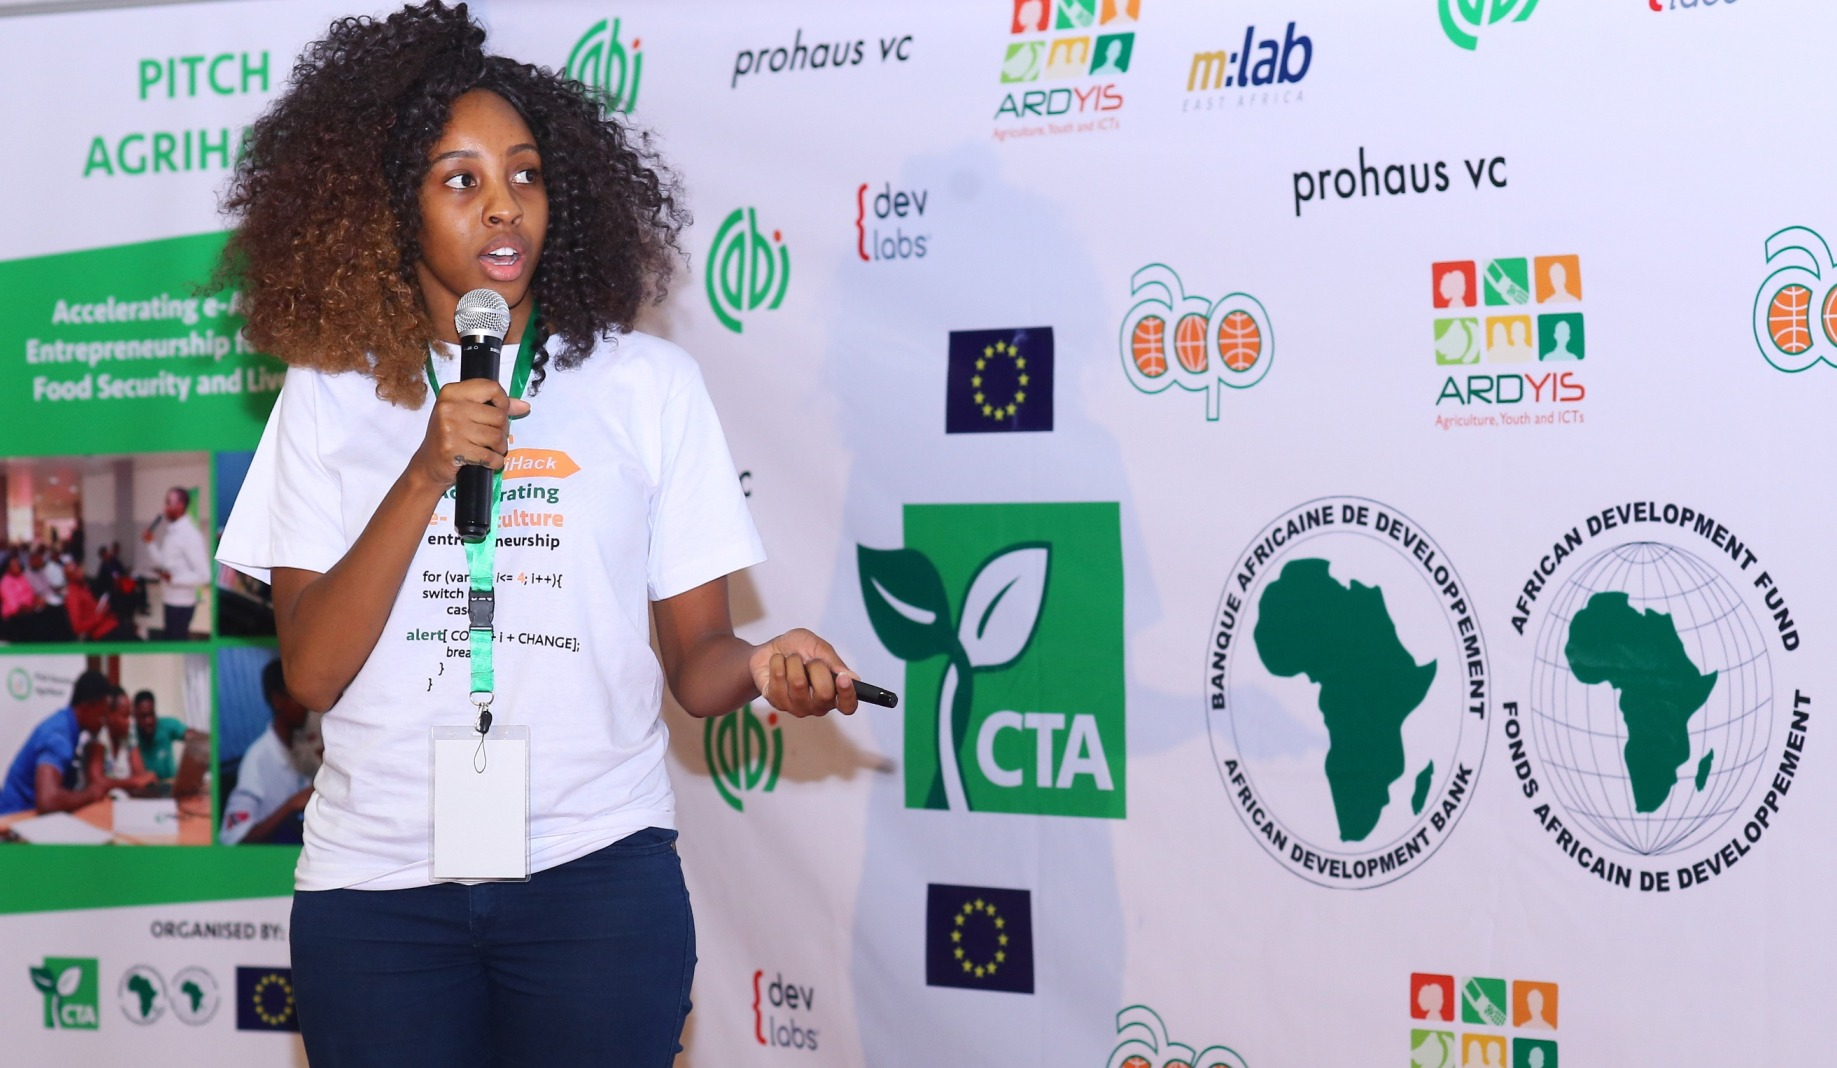 AgriHack competition pitch 2019